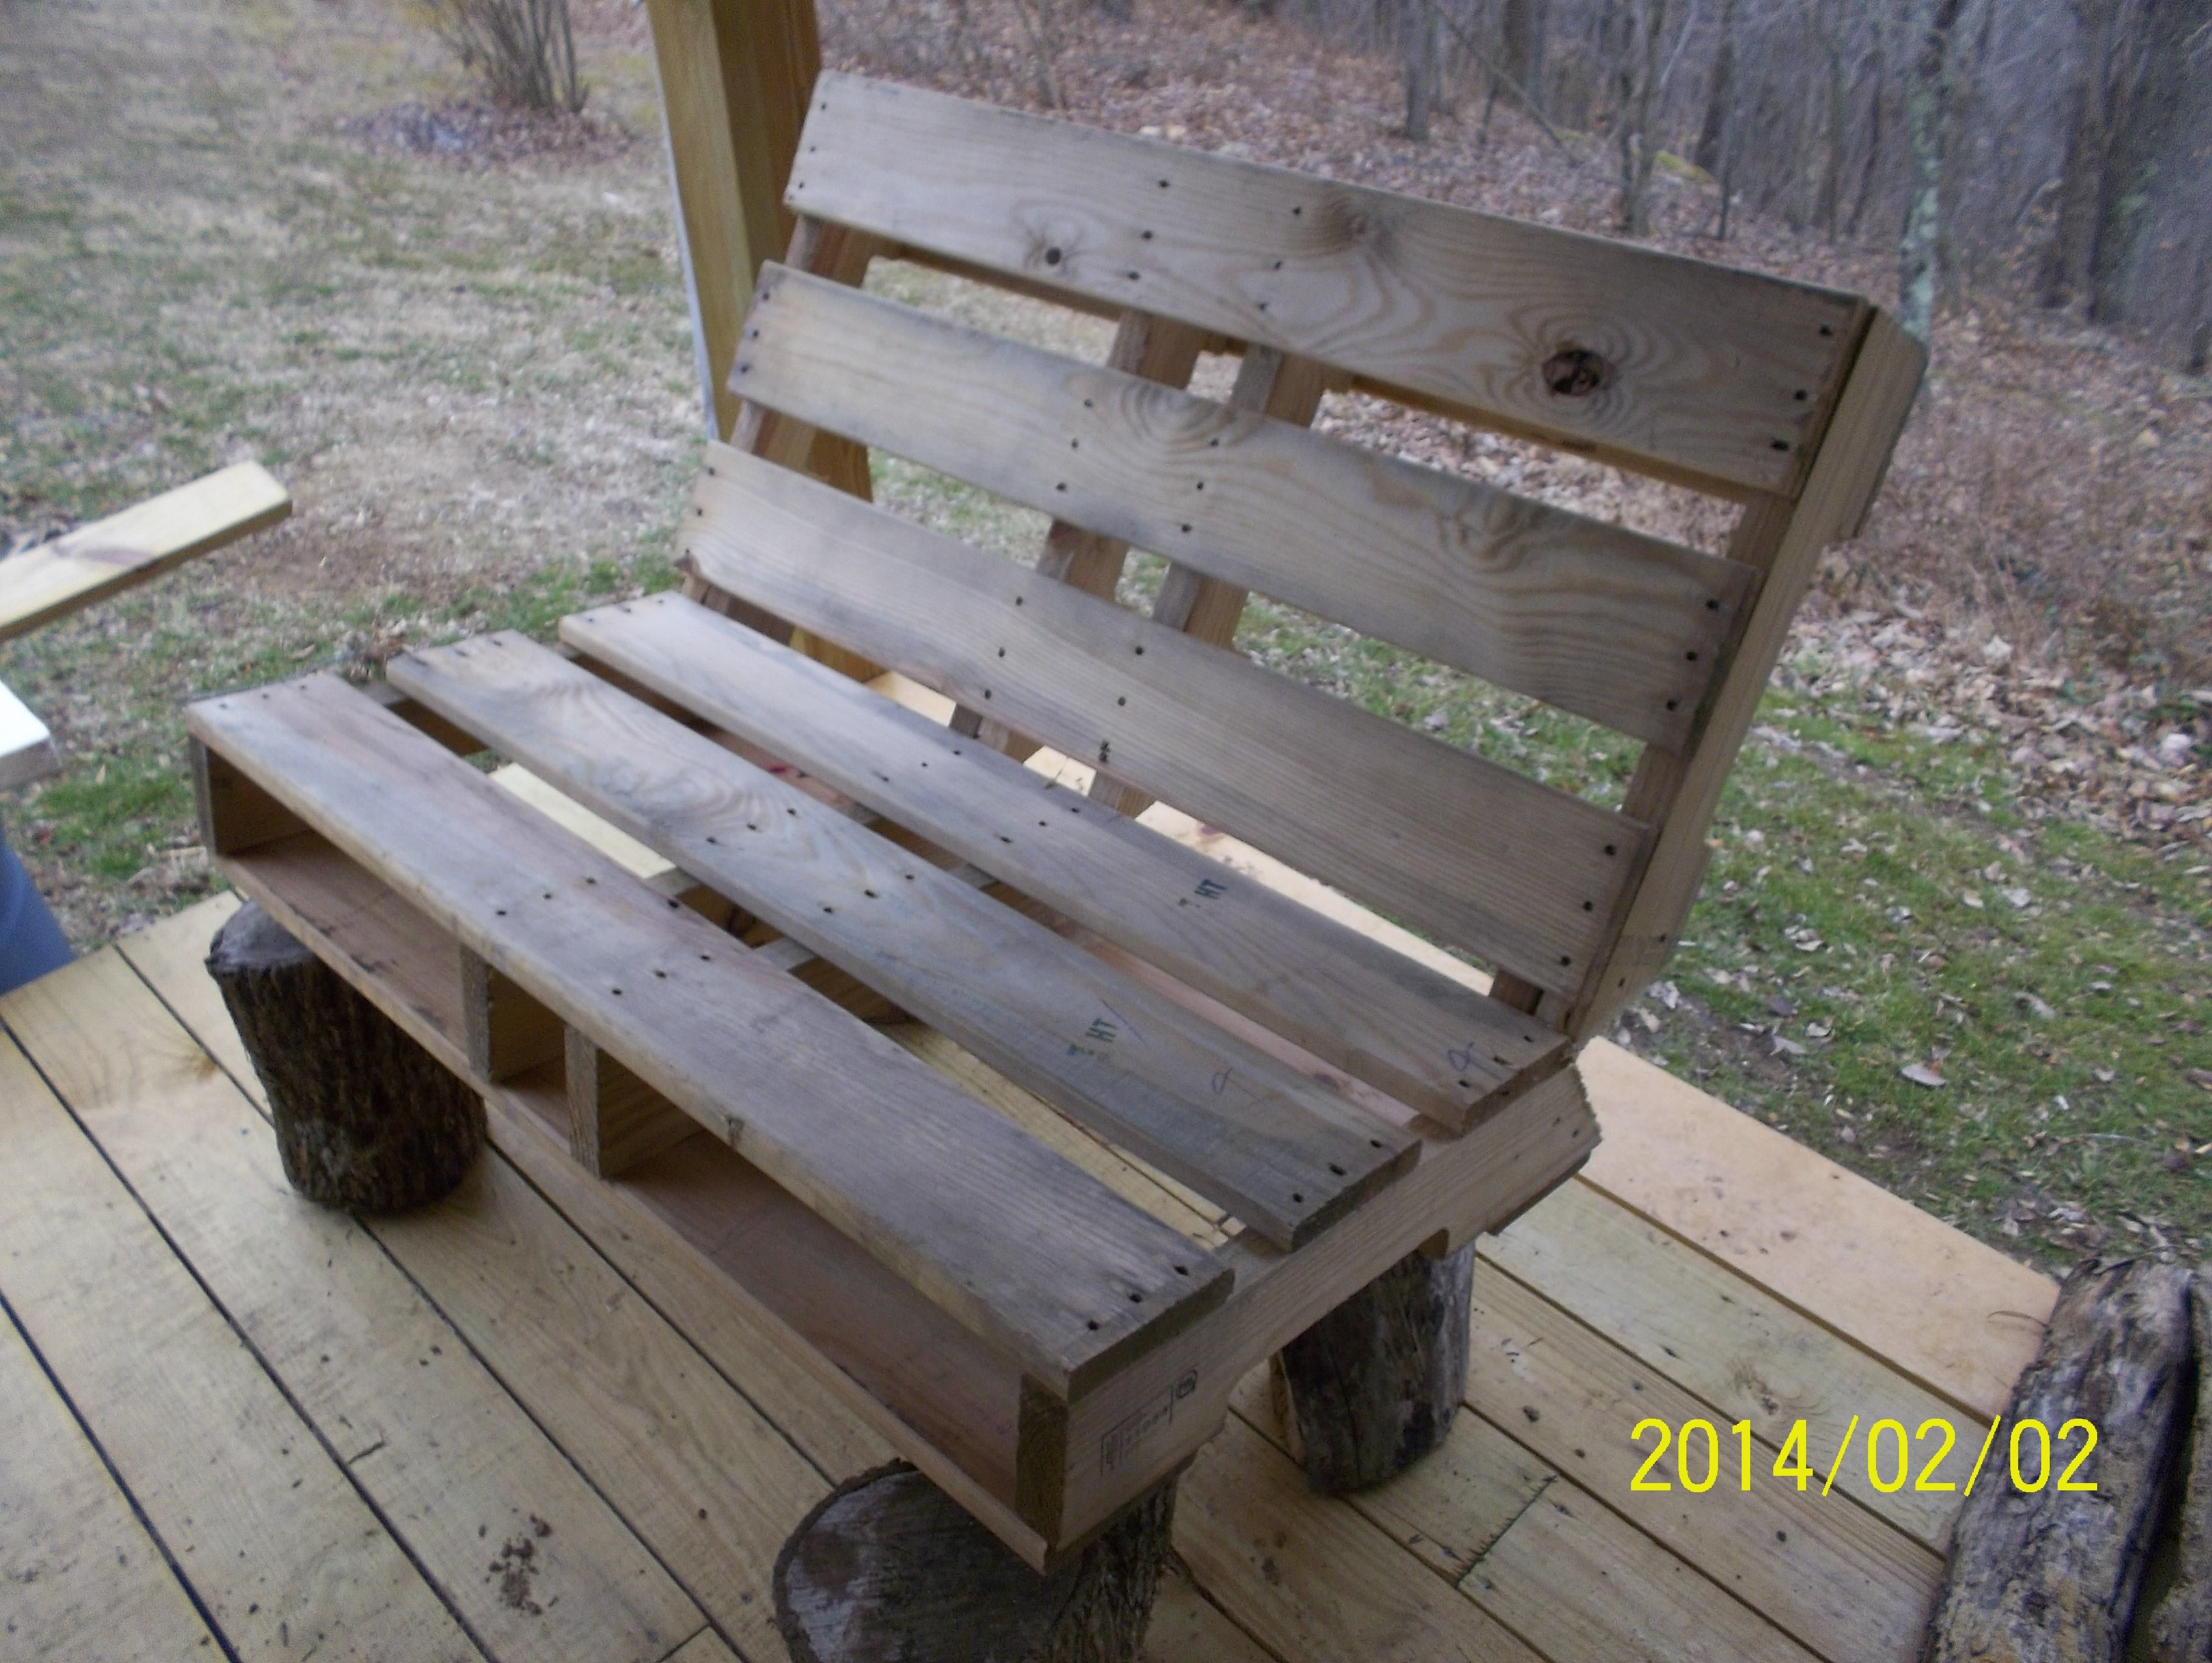 Stan S First Attempt To Build A Fire Pit Bench From A Pallet